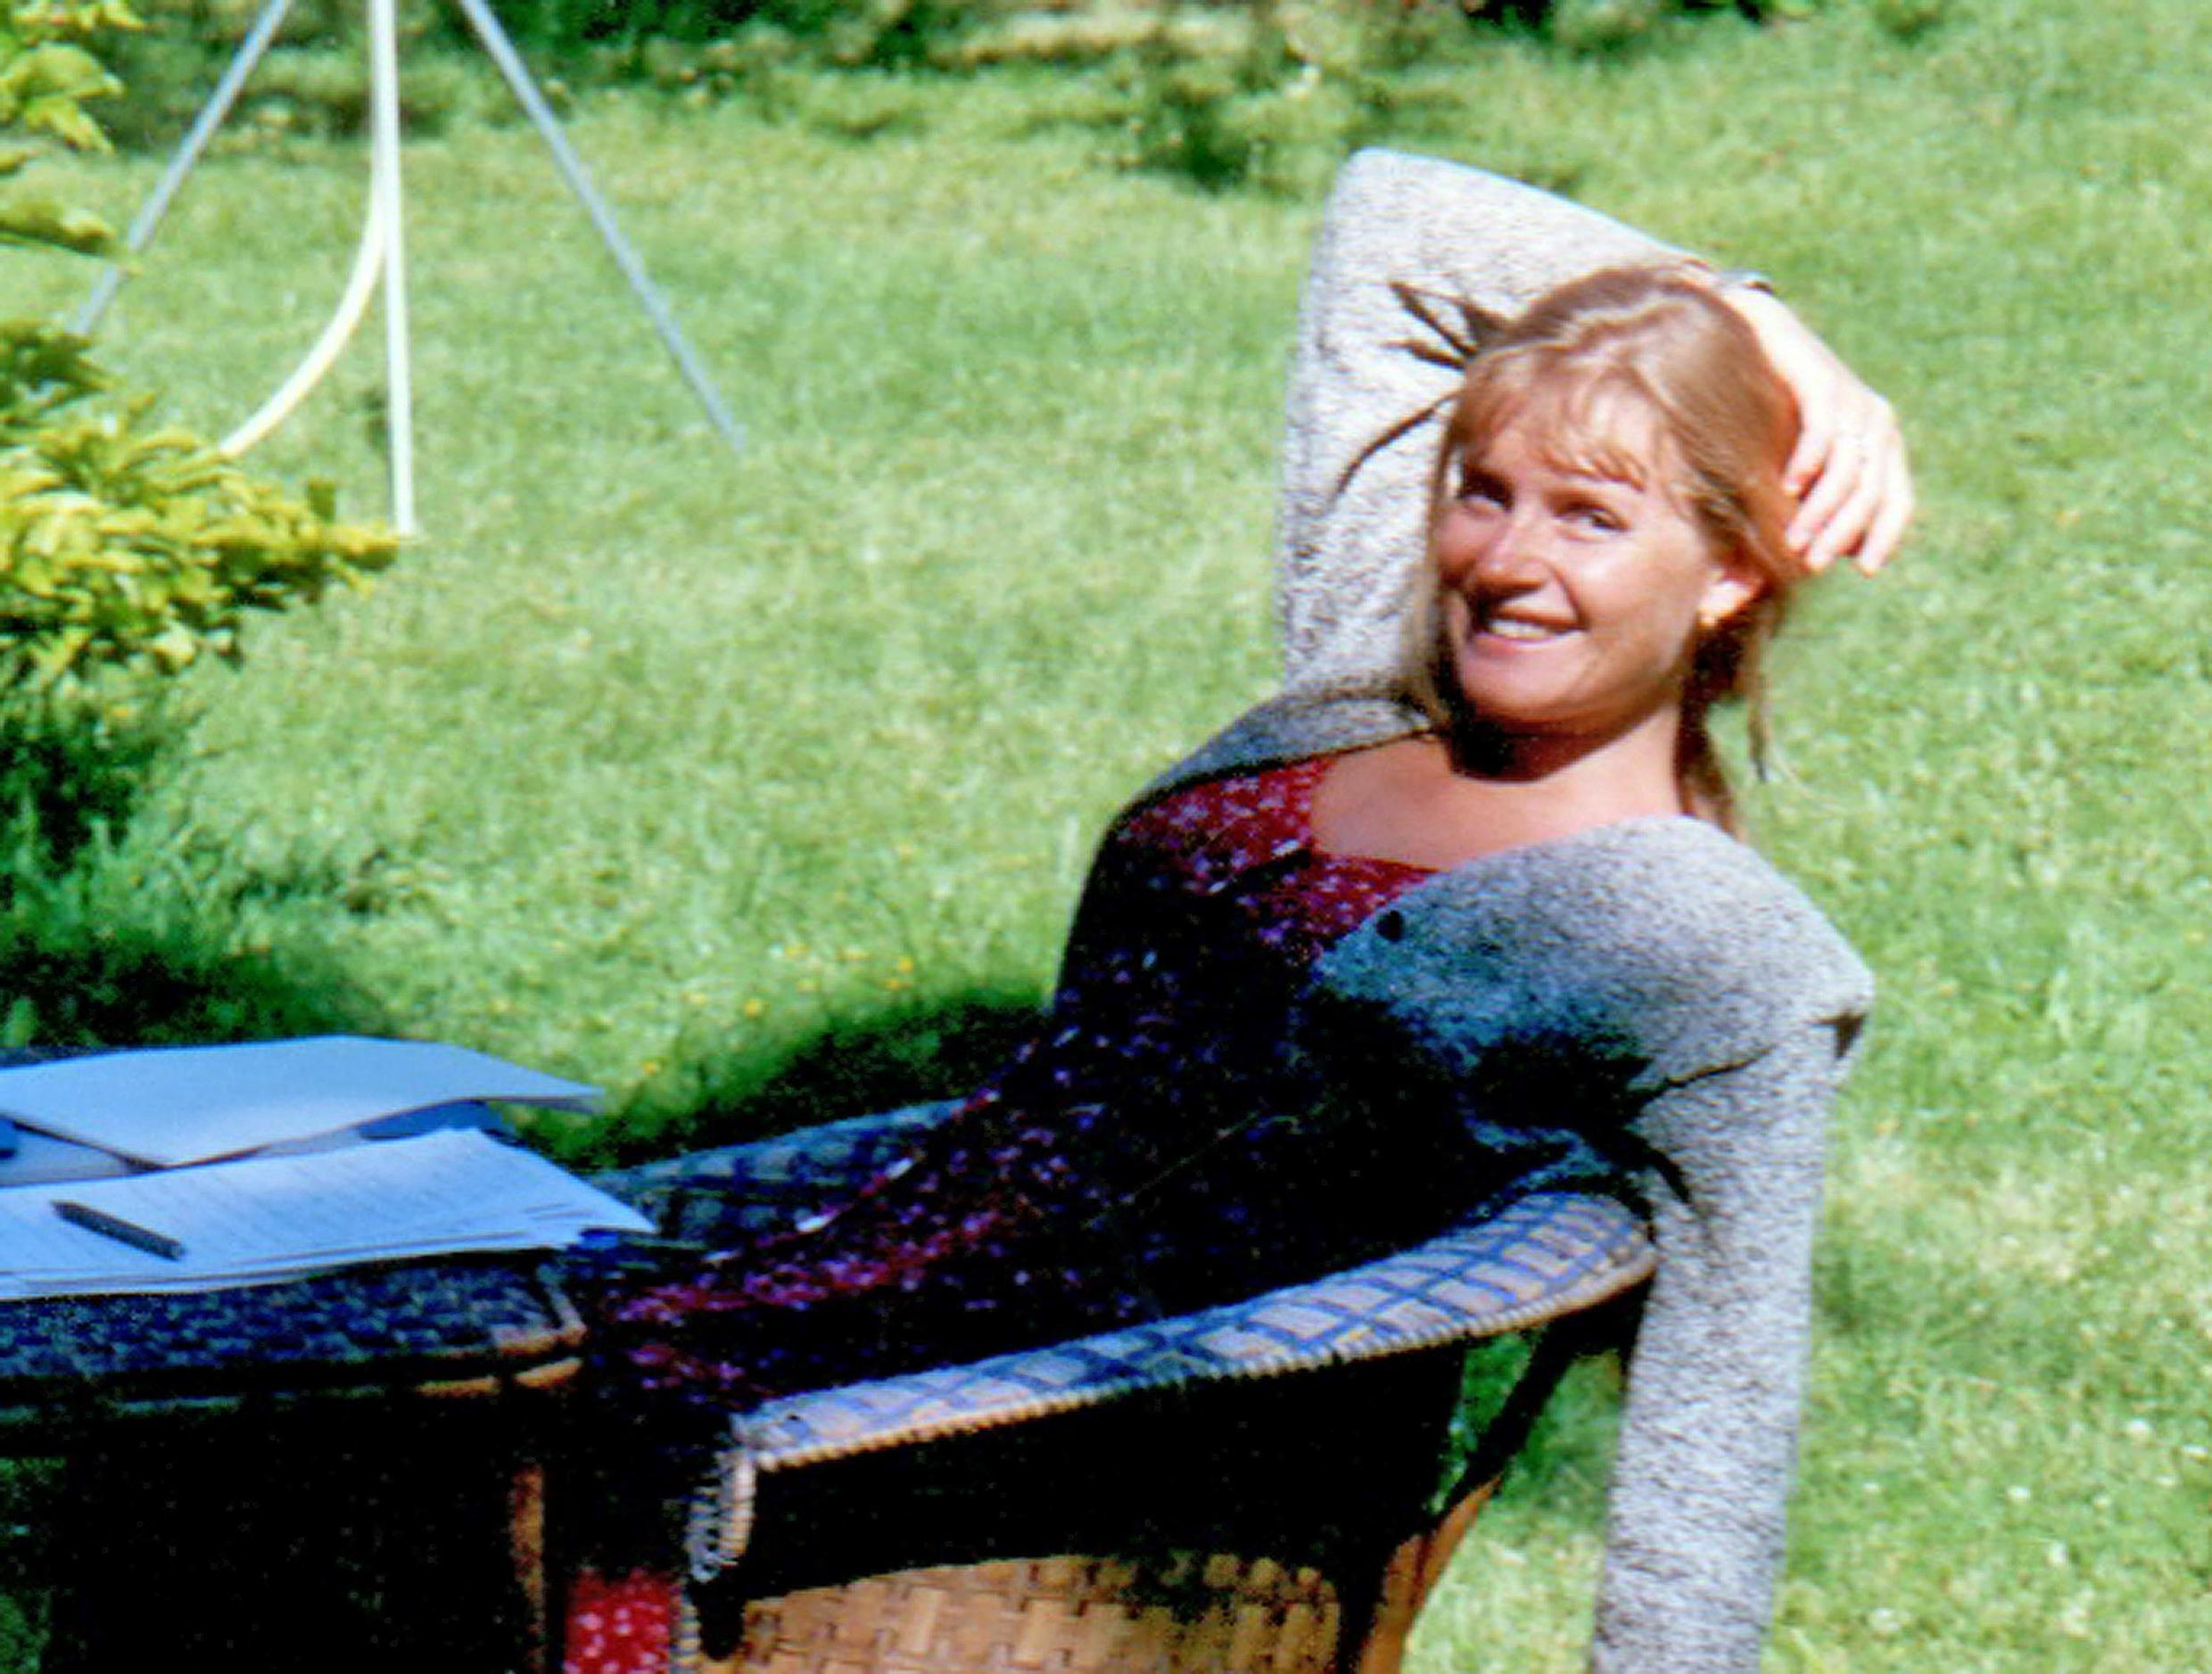 Undated family photo of Sophie Toscan du Plantier, a French television producer murdered in Ireland in 1996. The trial of the alleged murderer began in Paris on 27 May 2019.